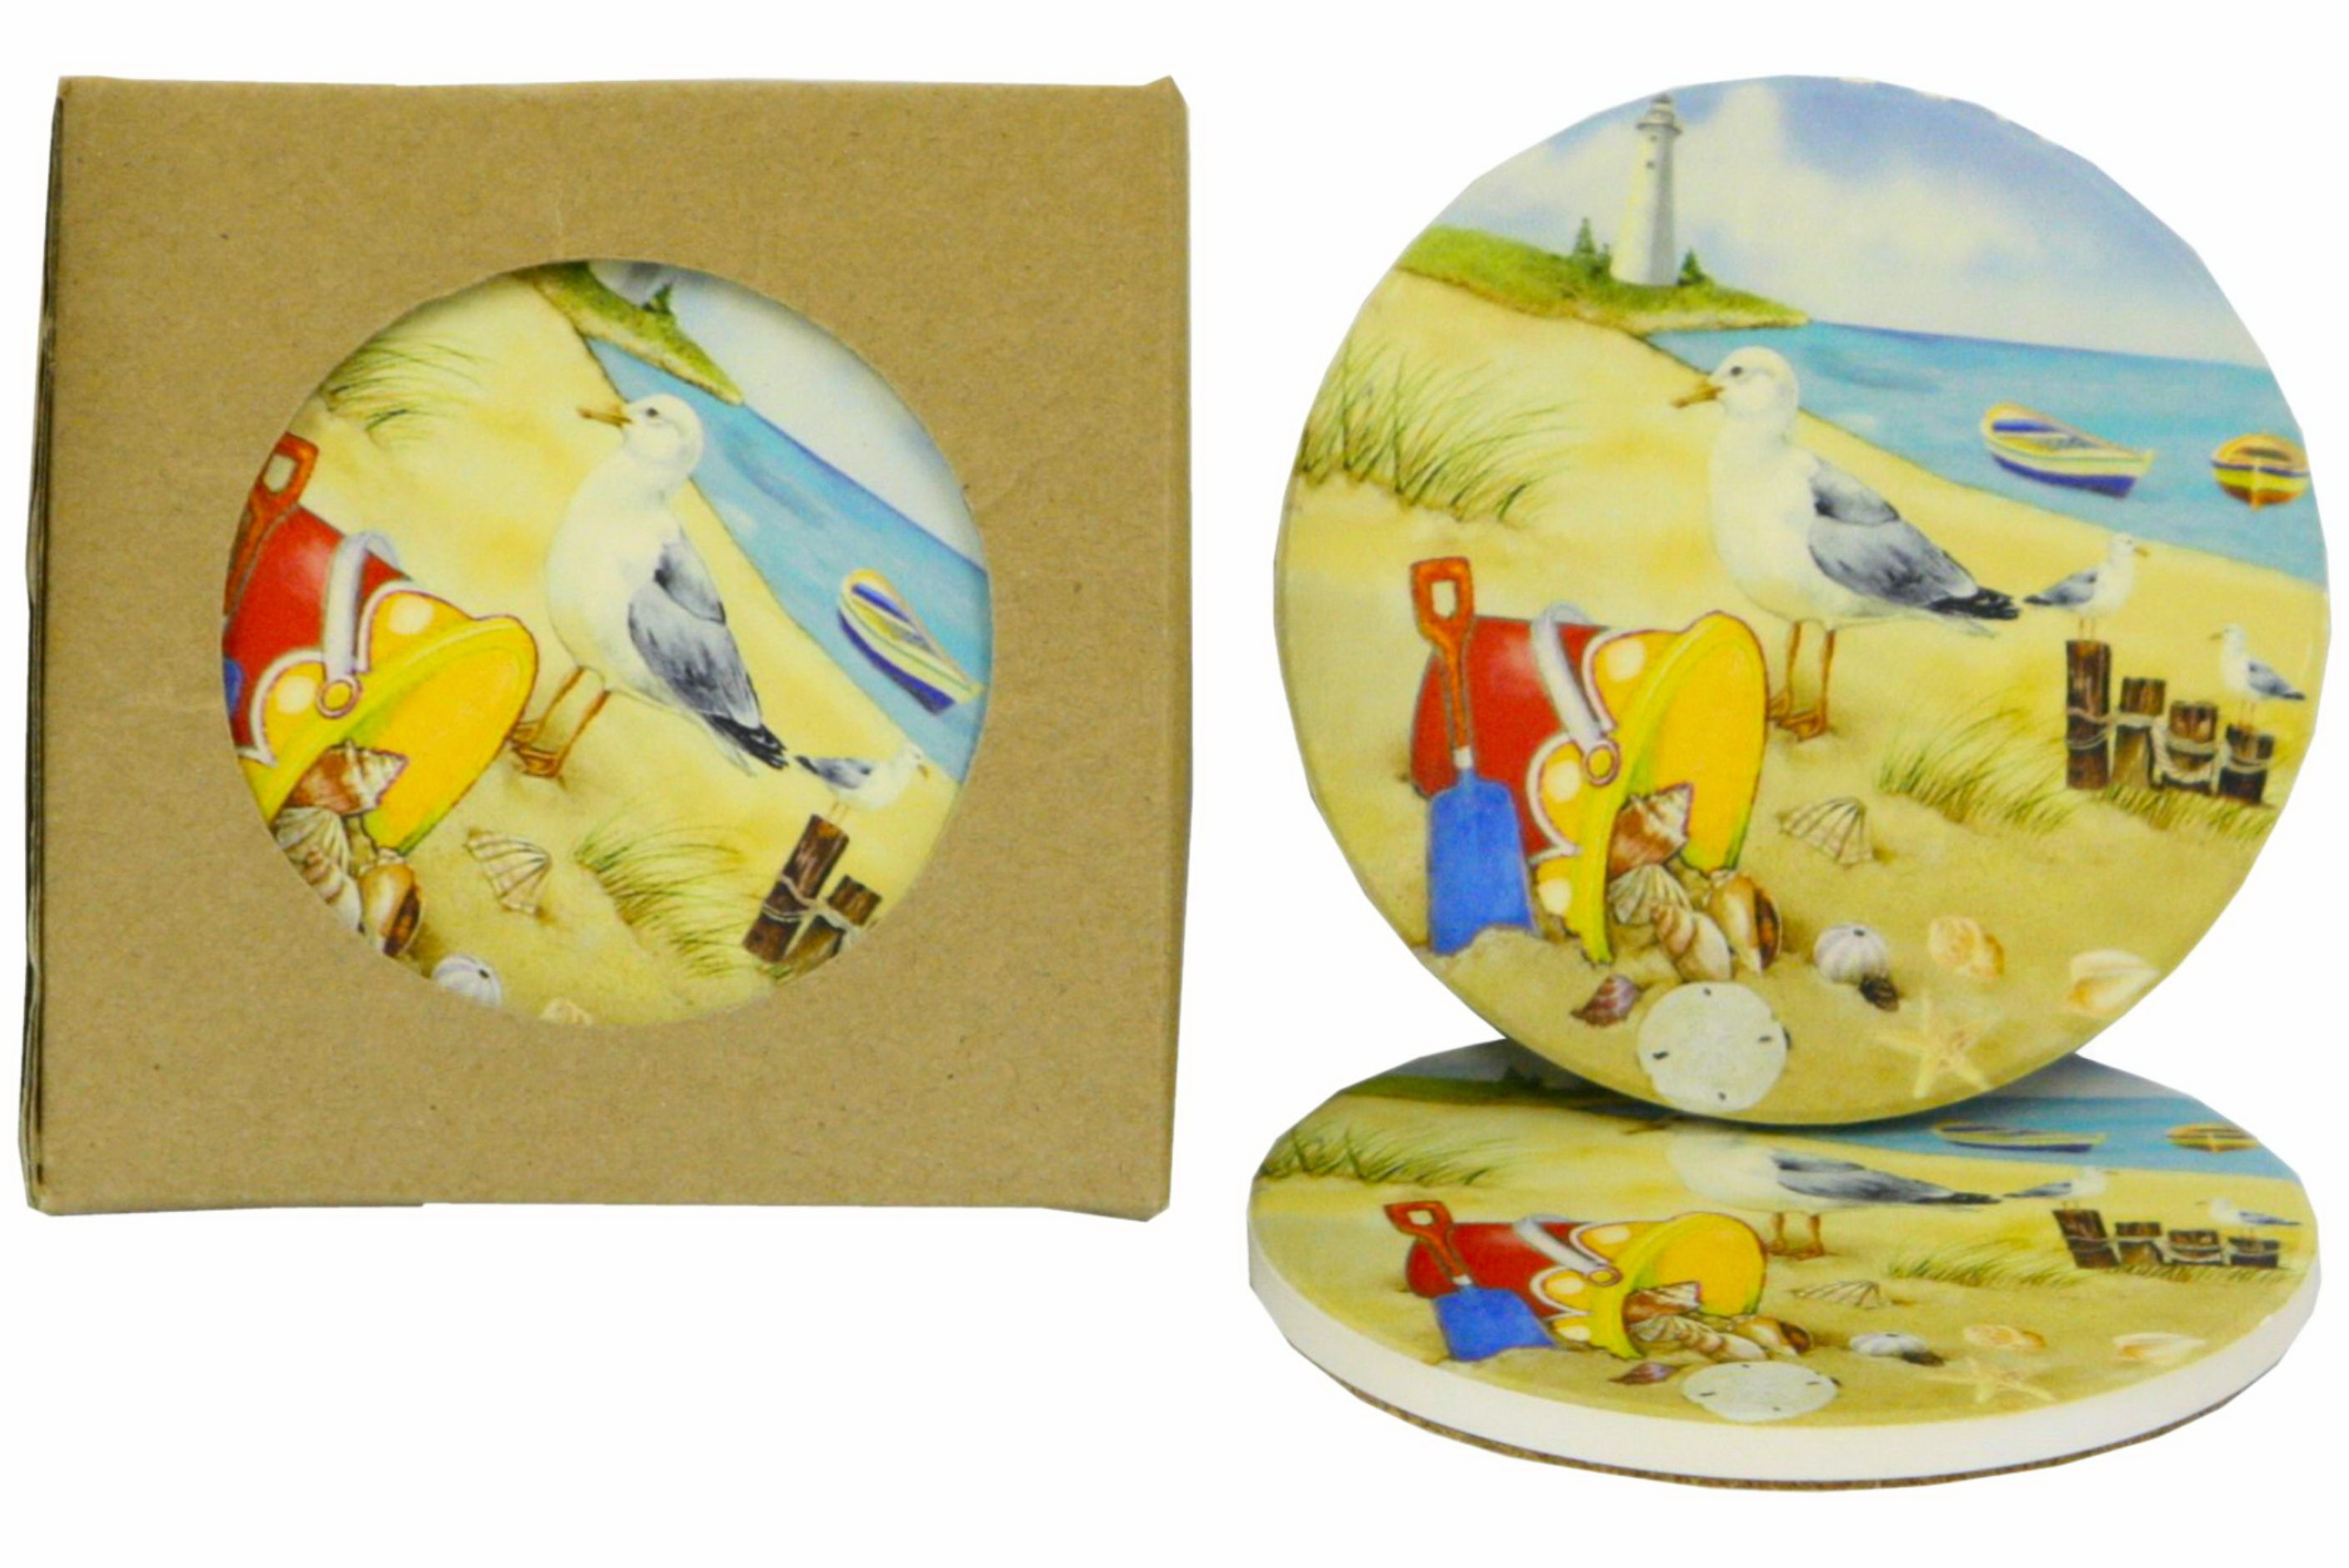 Seagull Design Coasters Set Of 4 In Window Gift Box